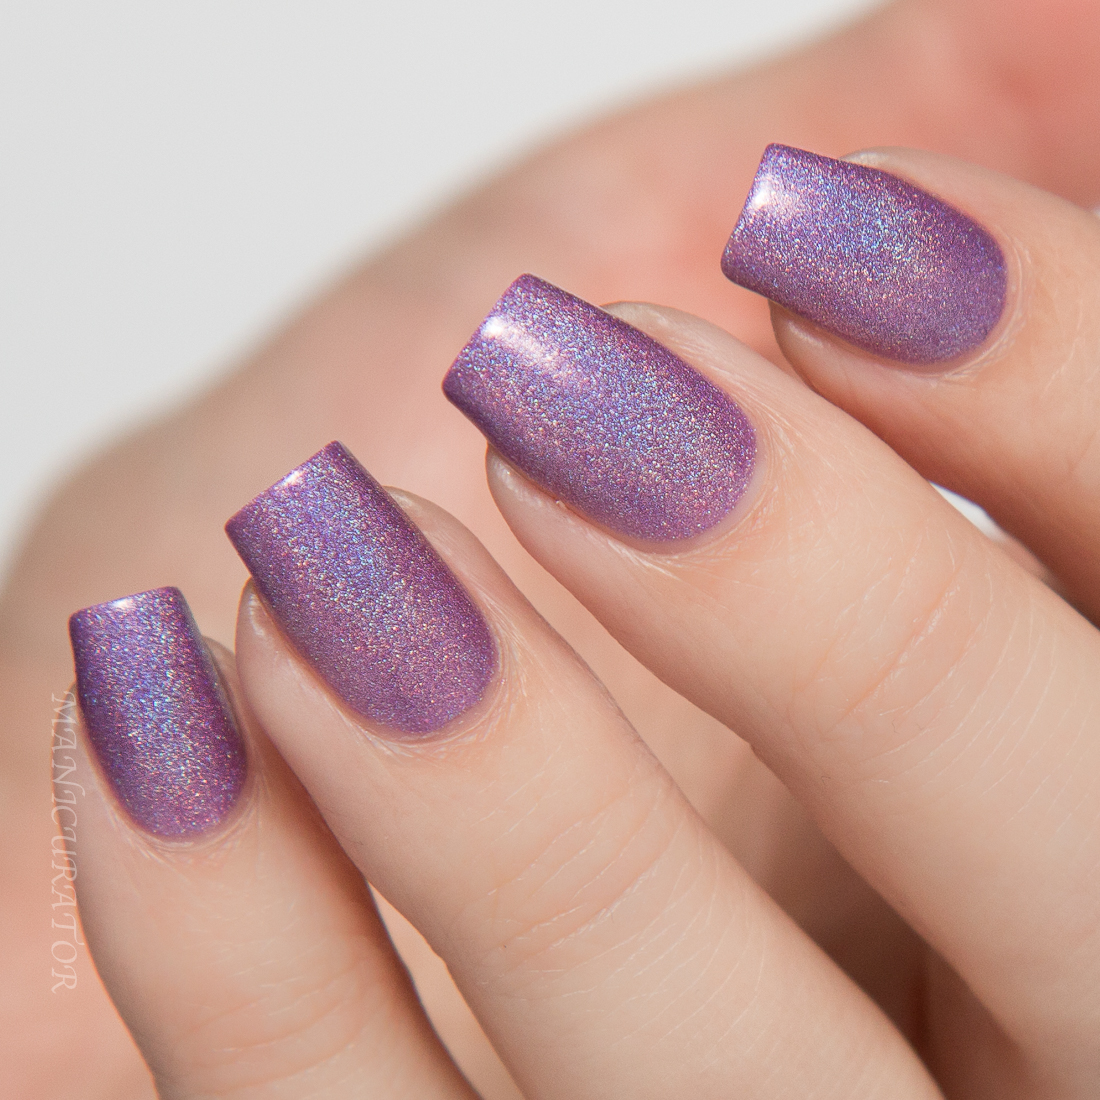 Glam-Polish-WOOSH!-Holo-Swatch